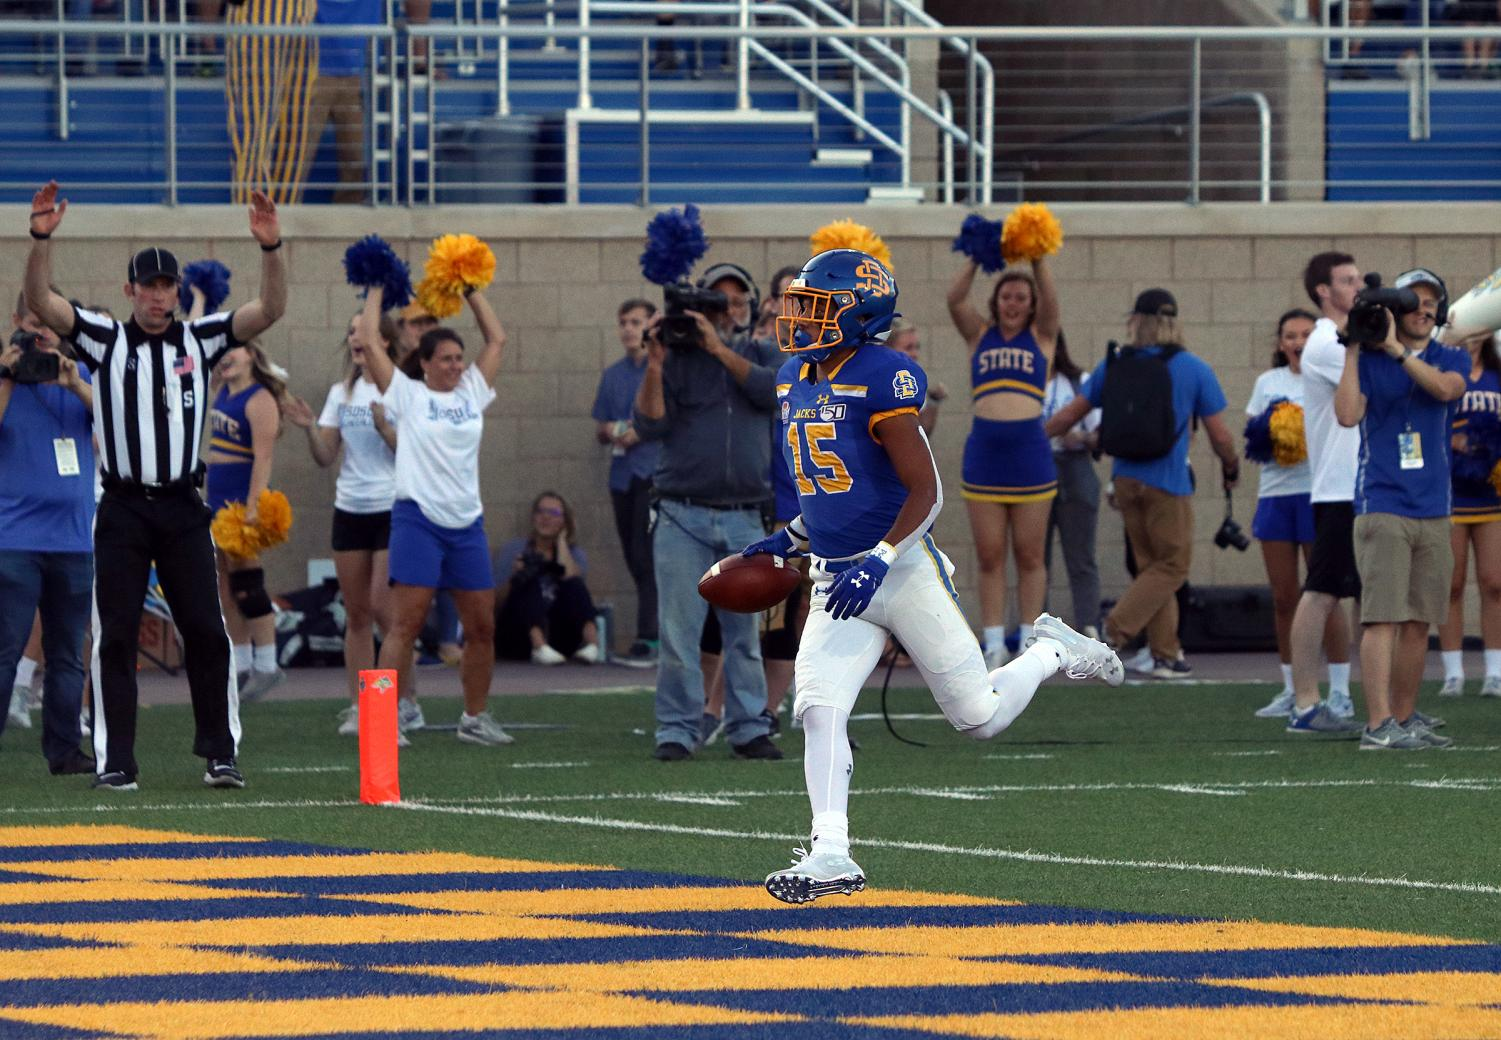 South Dakota State receiver Cade Johnson finds the endzone Saturday, Sept. 21, against Southern Utah. Johnson caught five passes for 68 yards and a touchdown in the Jackrabbits' 43-7 thrashing of SUU.